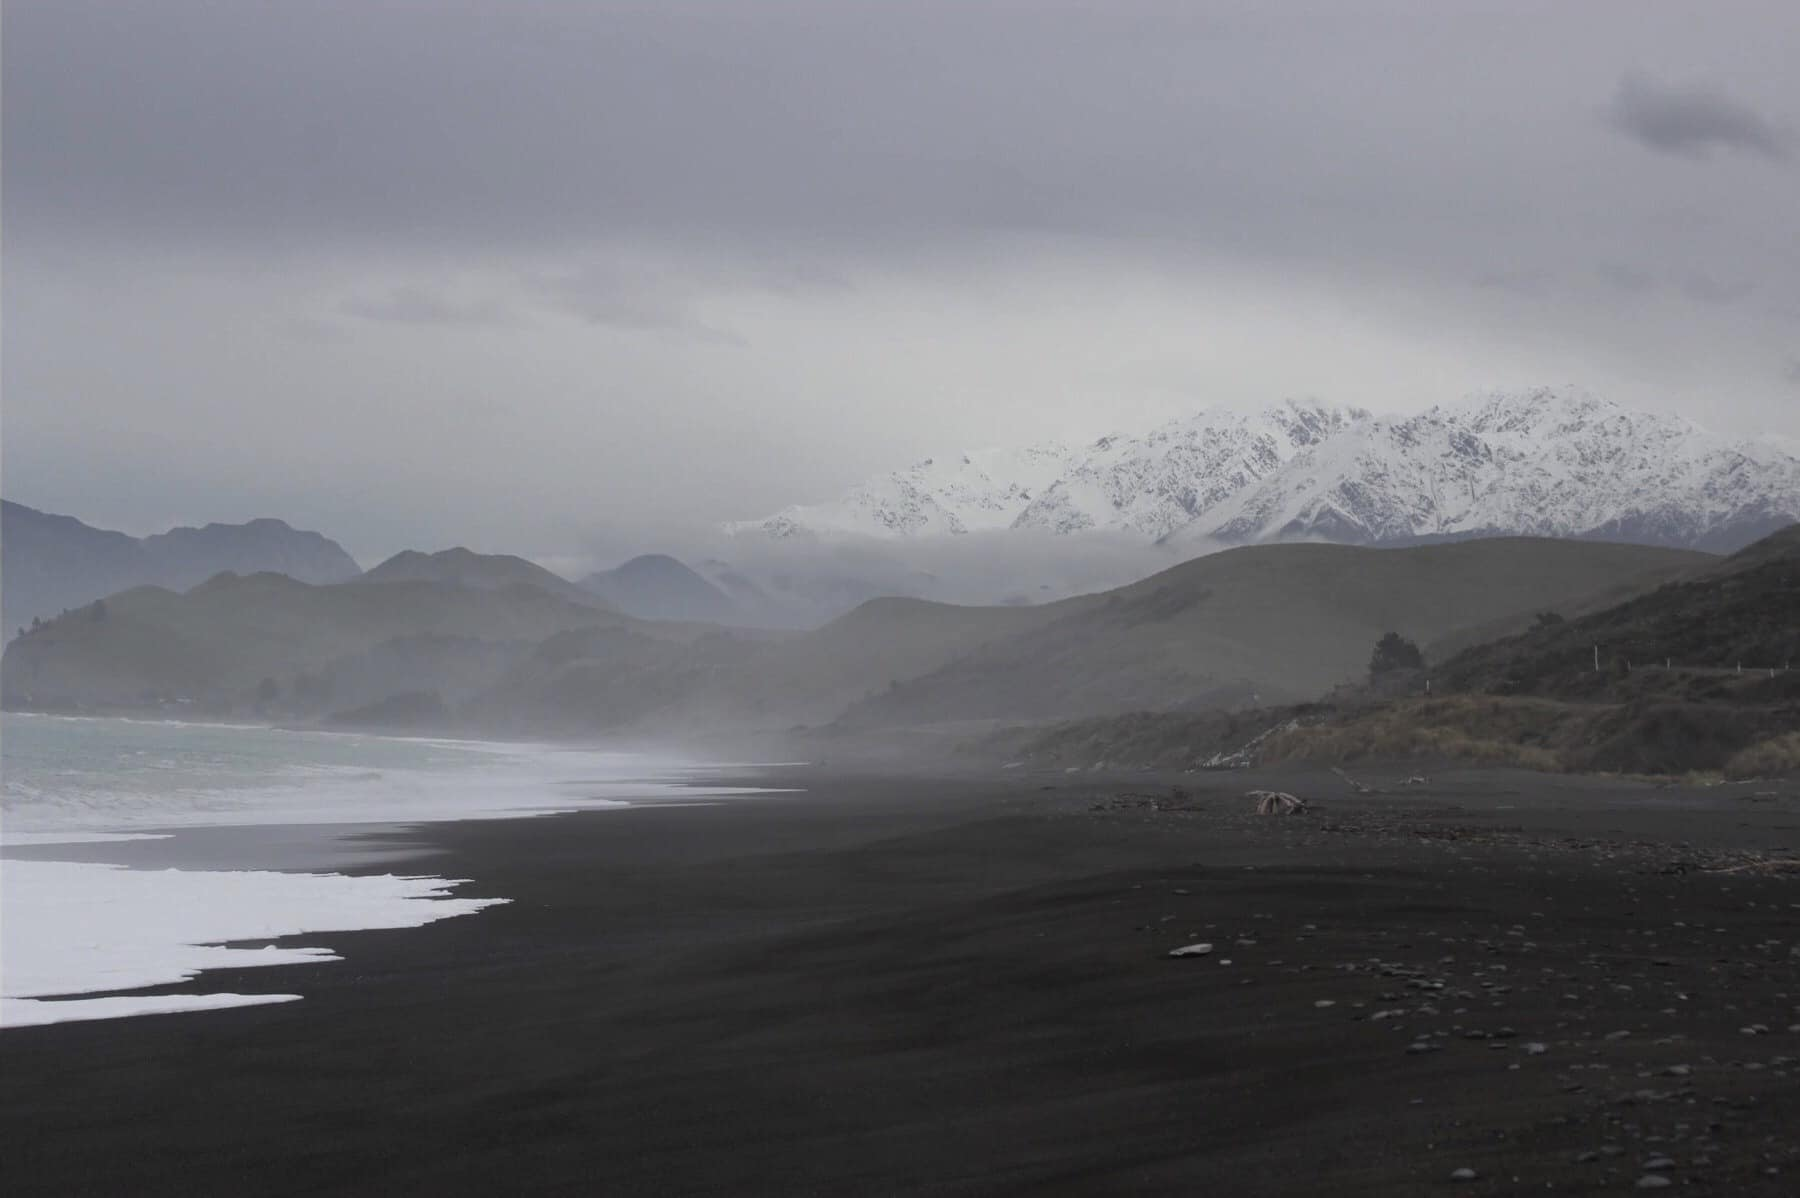 Black sand beach near Kaikoura in New Zealand. Find out if LivingSocial Escapes and Groupon Getaways are good deals or a scam in our Living Social & Groupon travel reviews.